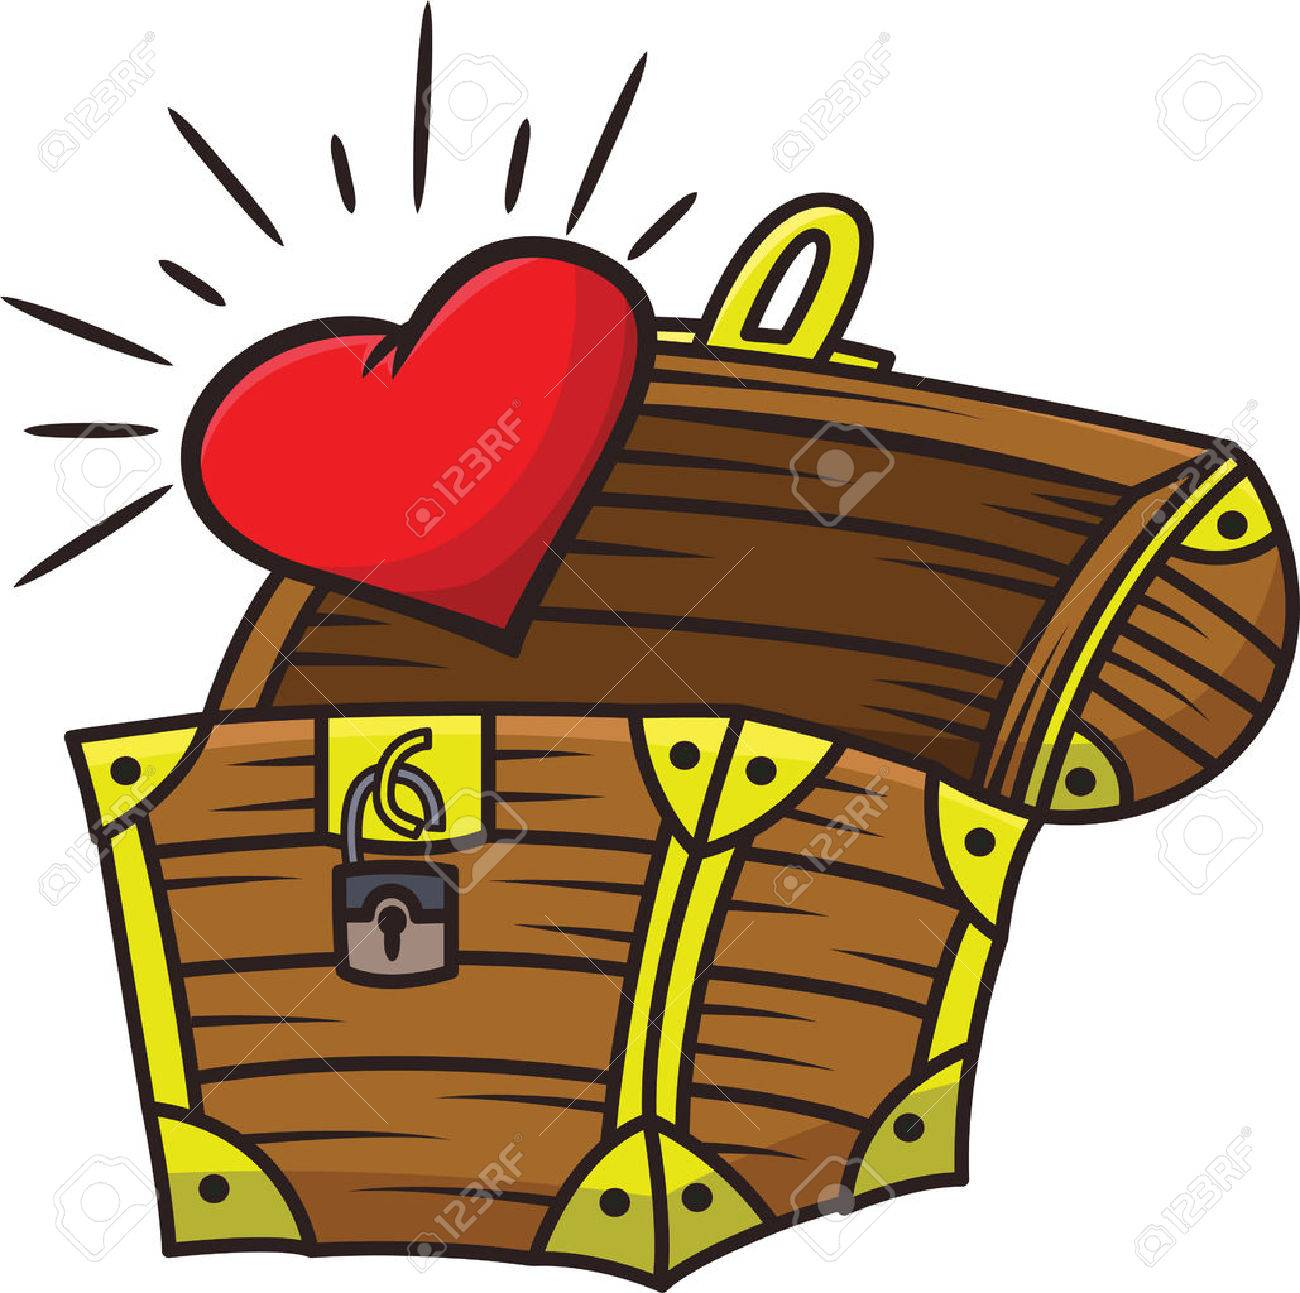 heart coming out of the treasure chest cartoon illustration isolated rh 123rf com treasure chest vector png treasure chest vector clipart